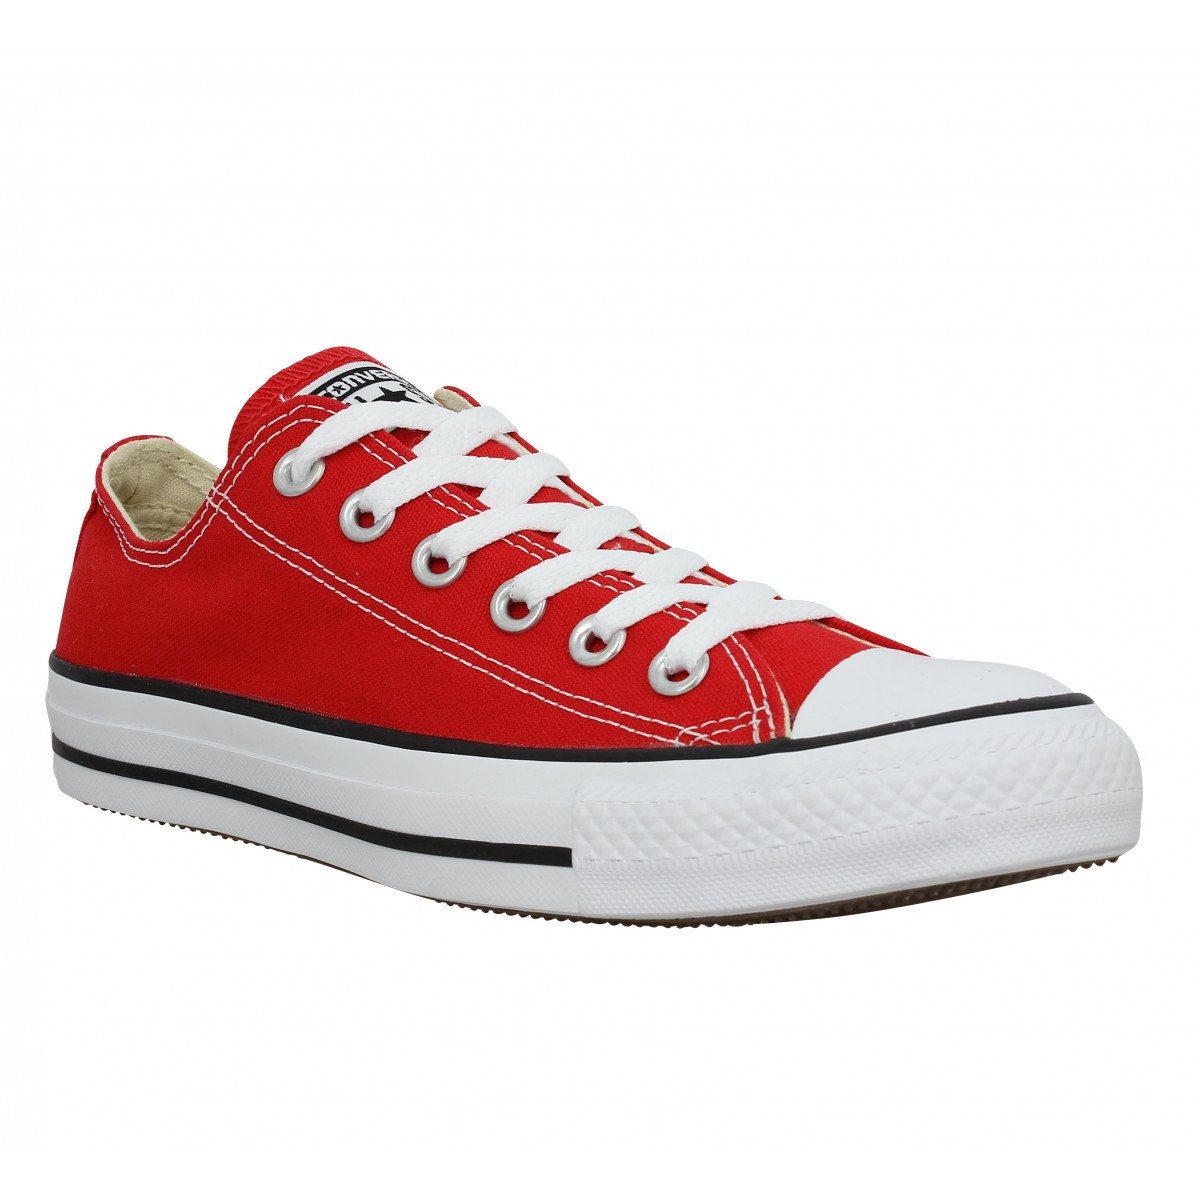 CONVERSE Chuck Taylor All Star toile Femme Rouge